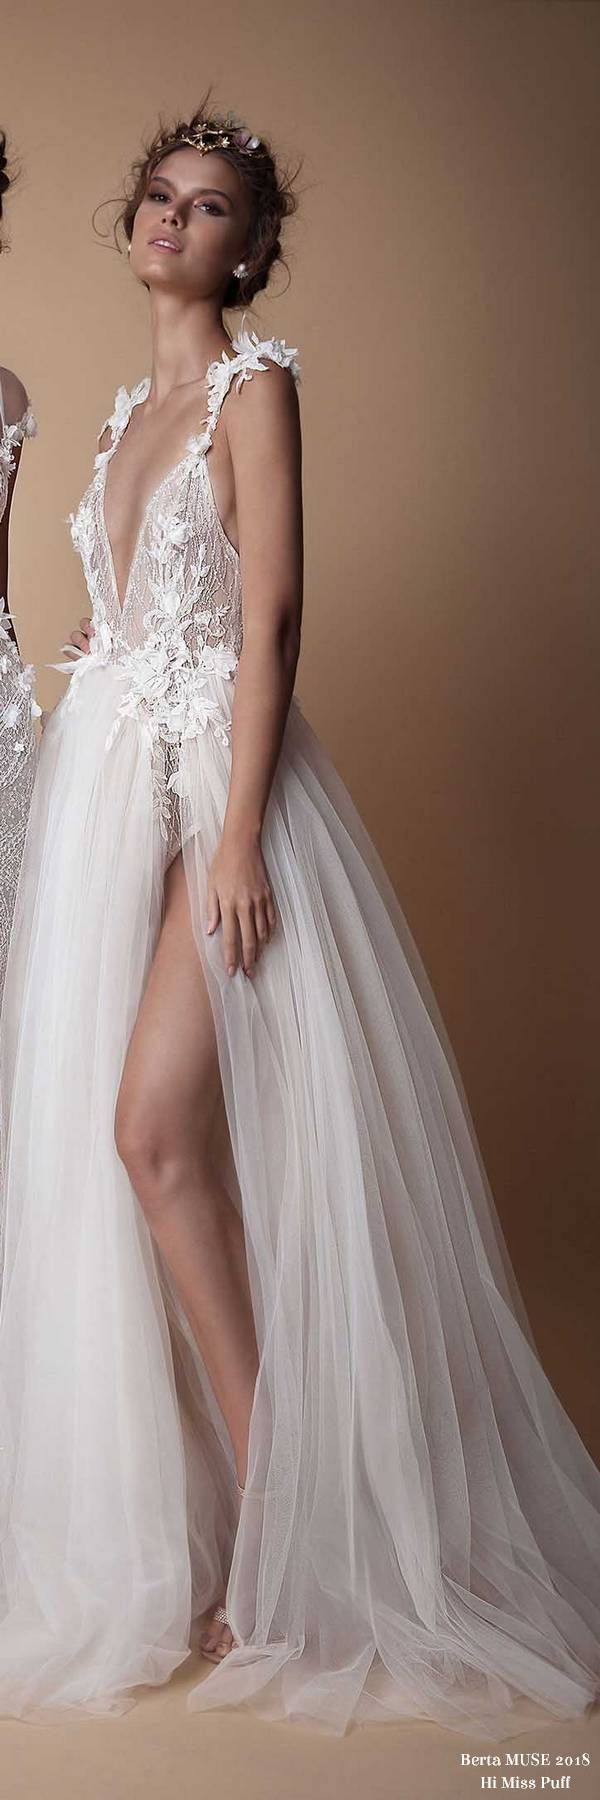 Berta MUSE Wedding Dress Collection2018 – Page 2 – Hi Miss Puff/ Follow me @ Melissa Riley- for more modern wedding dress collections, wedding cake ideas, modern eye makeup ideas, unique wedding photo ideas, reception color palate ideas and more. transcendentwoman